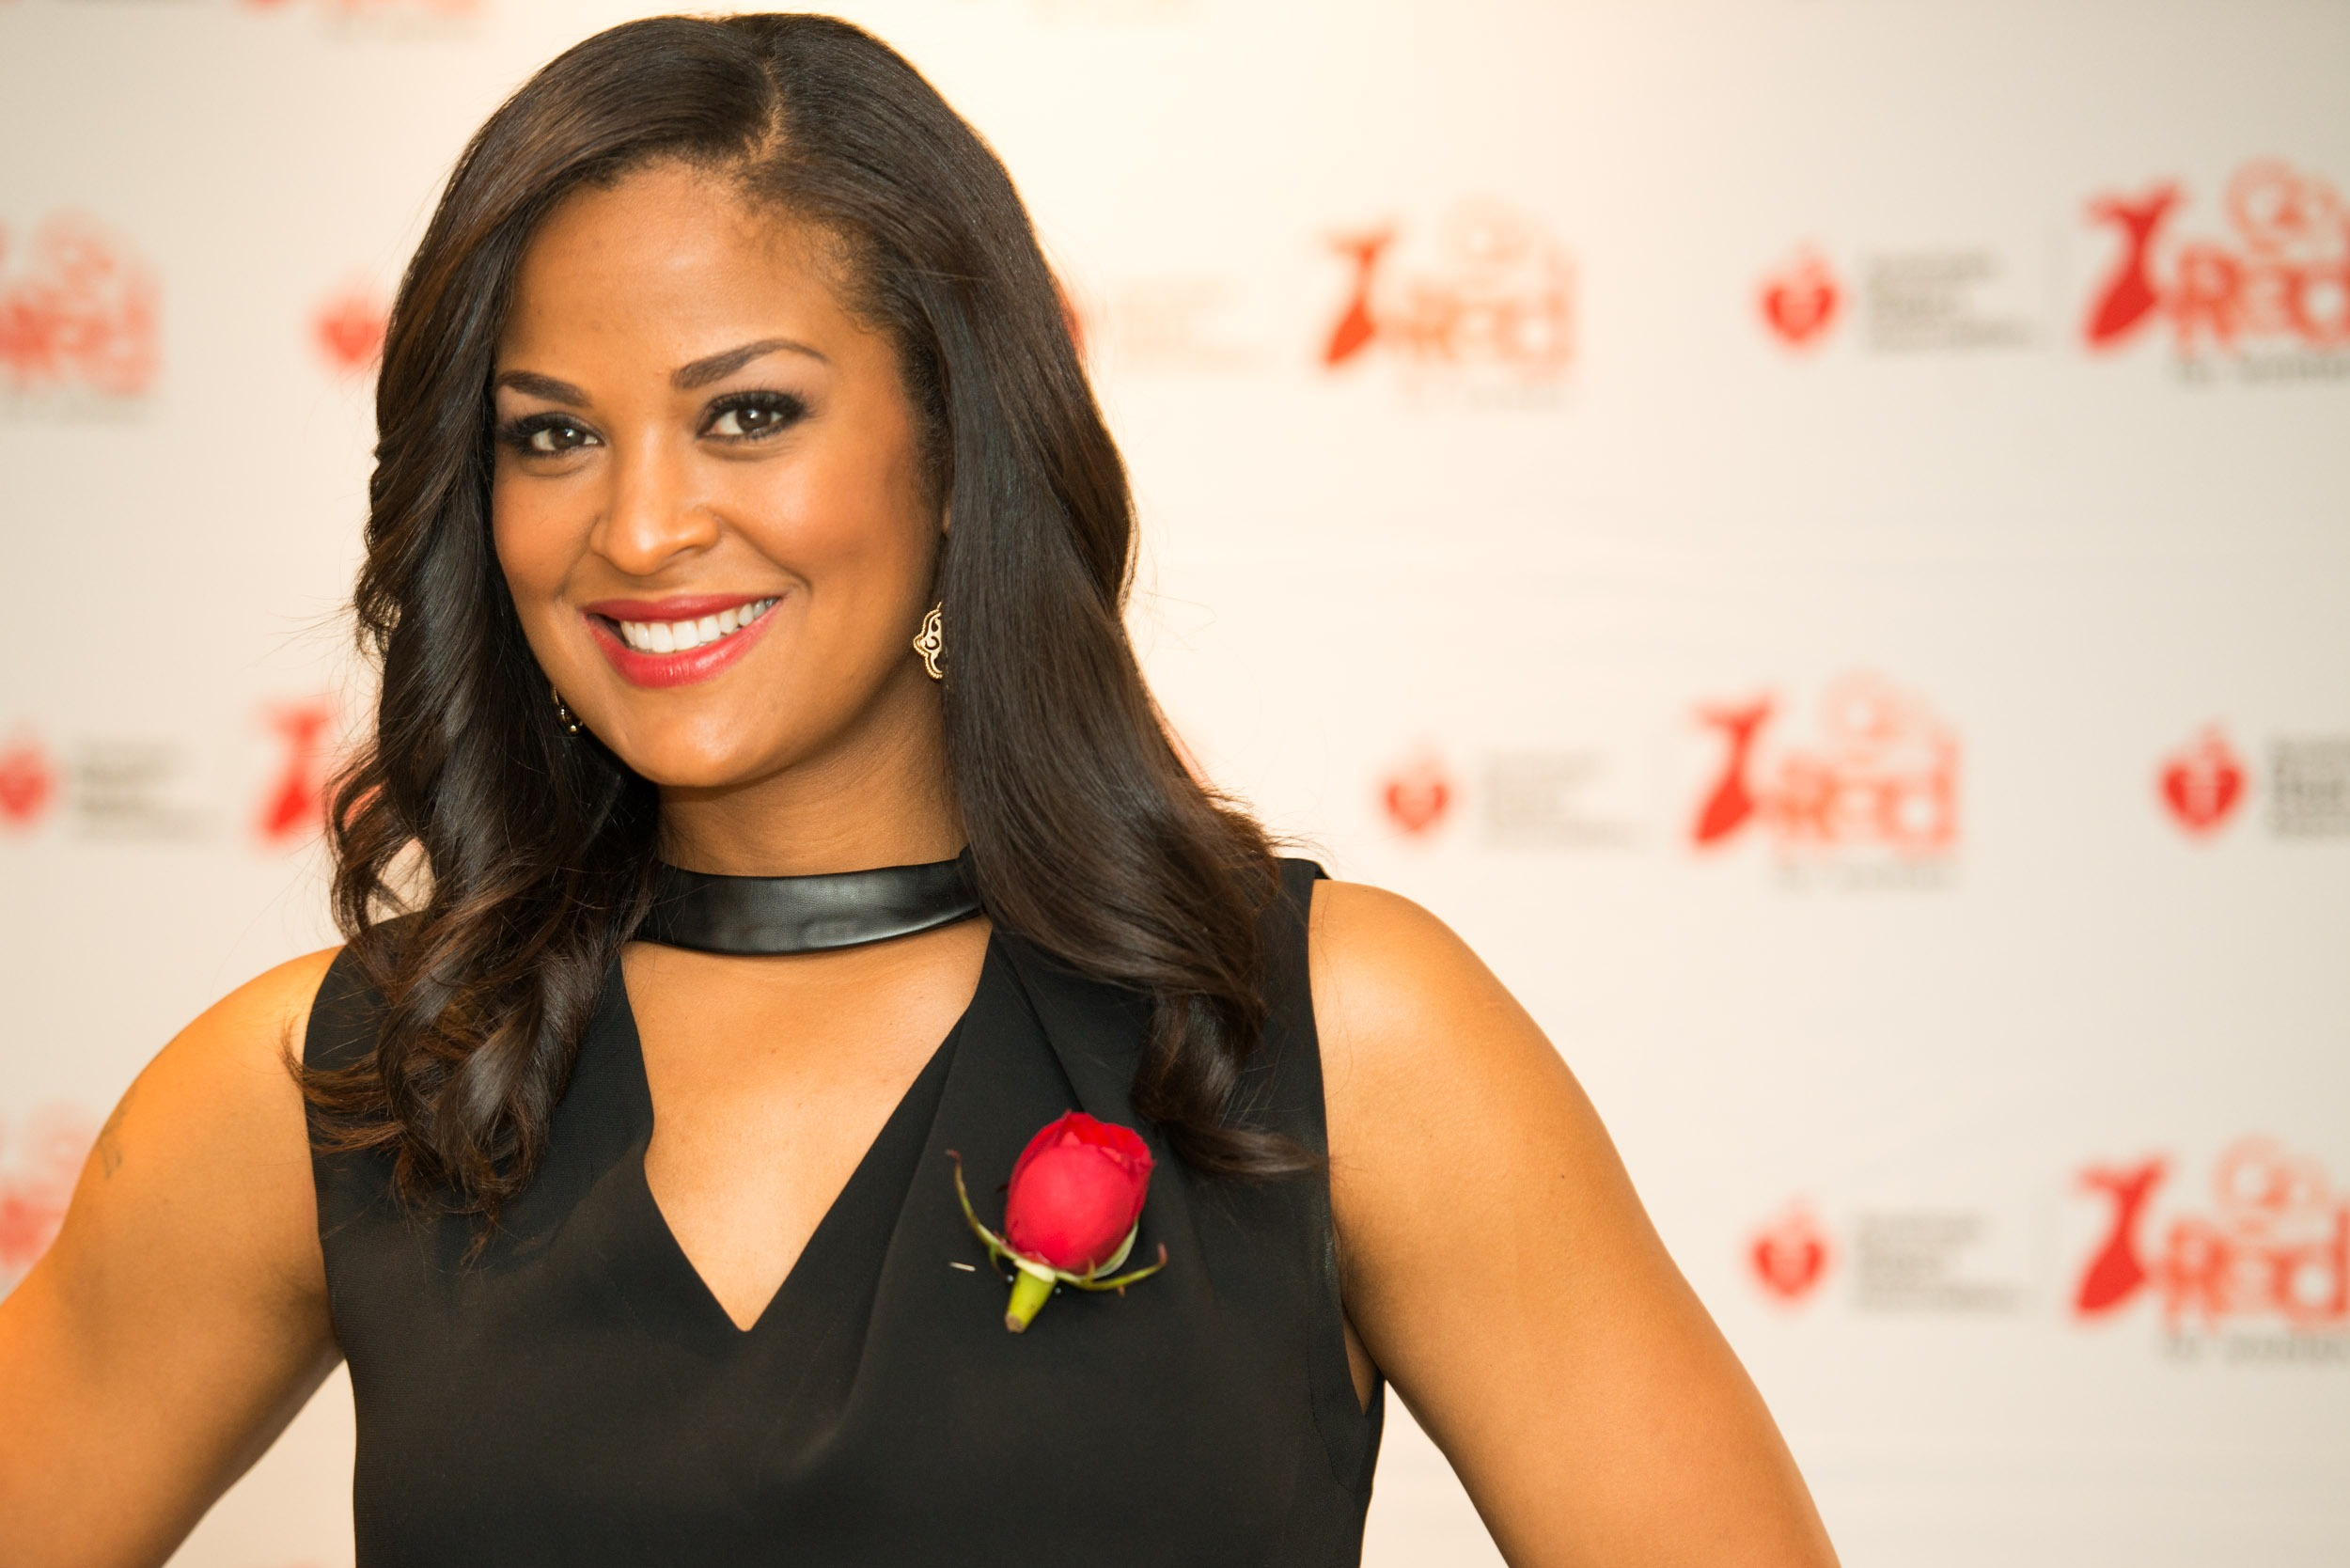 5 things we can learn from fitness expert laila ali - zing blog